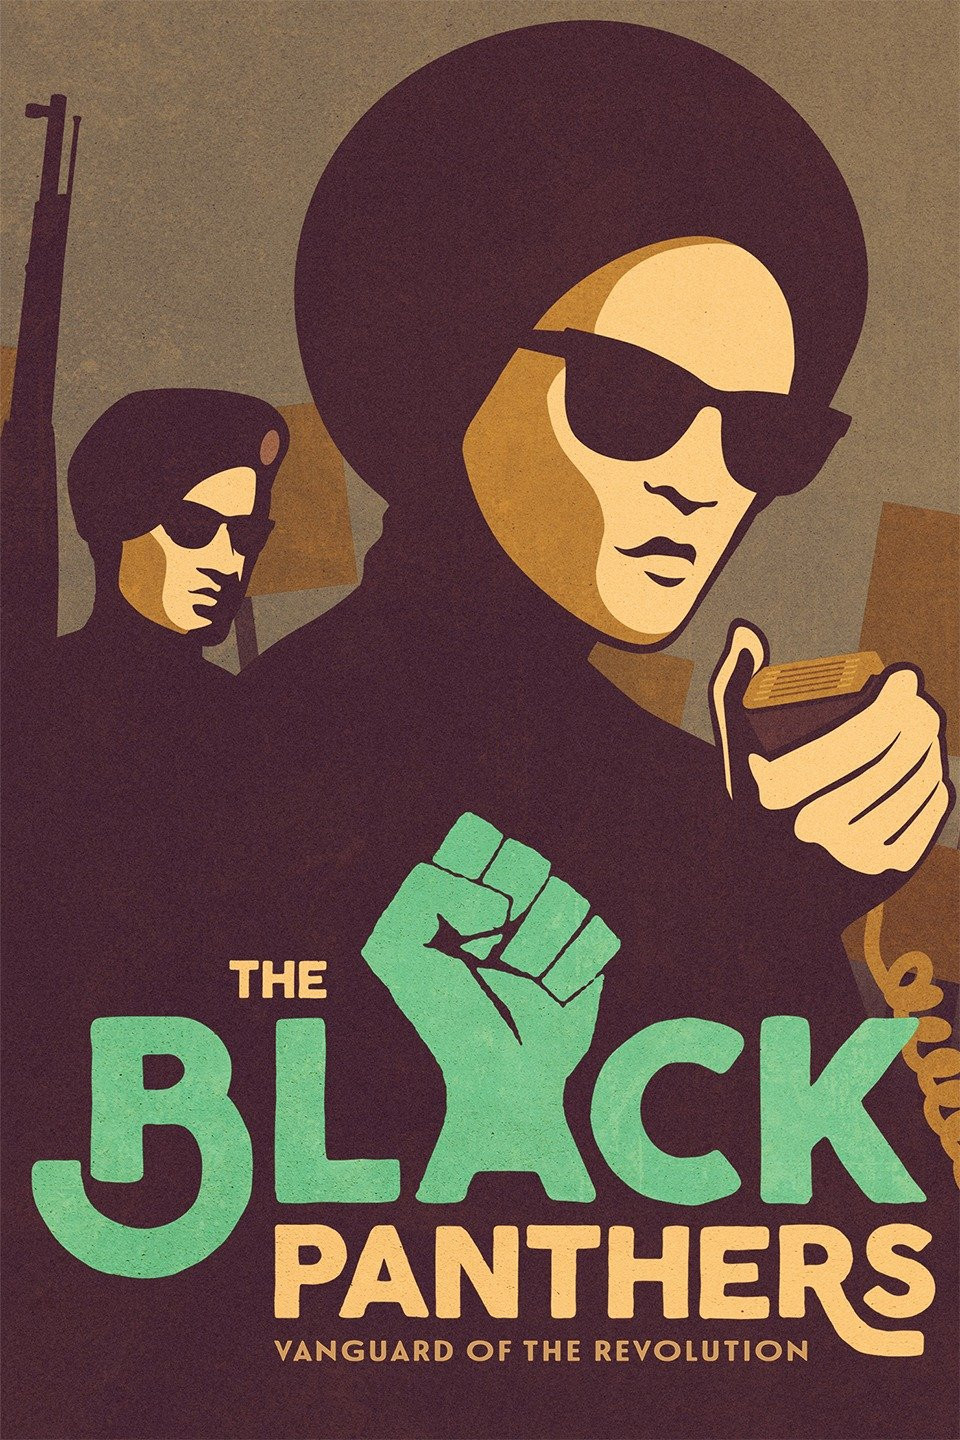 The Black Panthers_ Vanguard of the Revolution